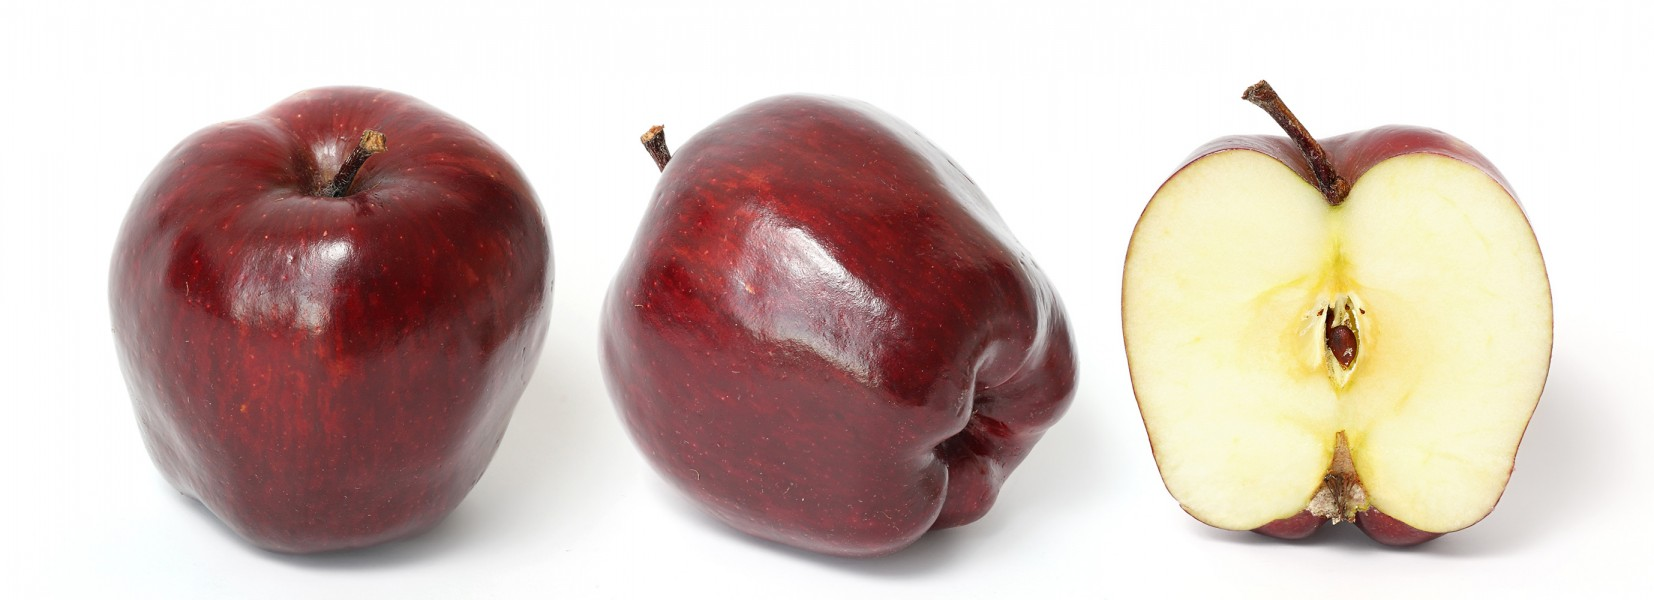 Red delicious and cross section